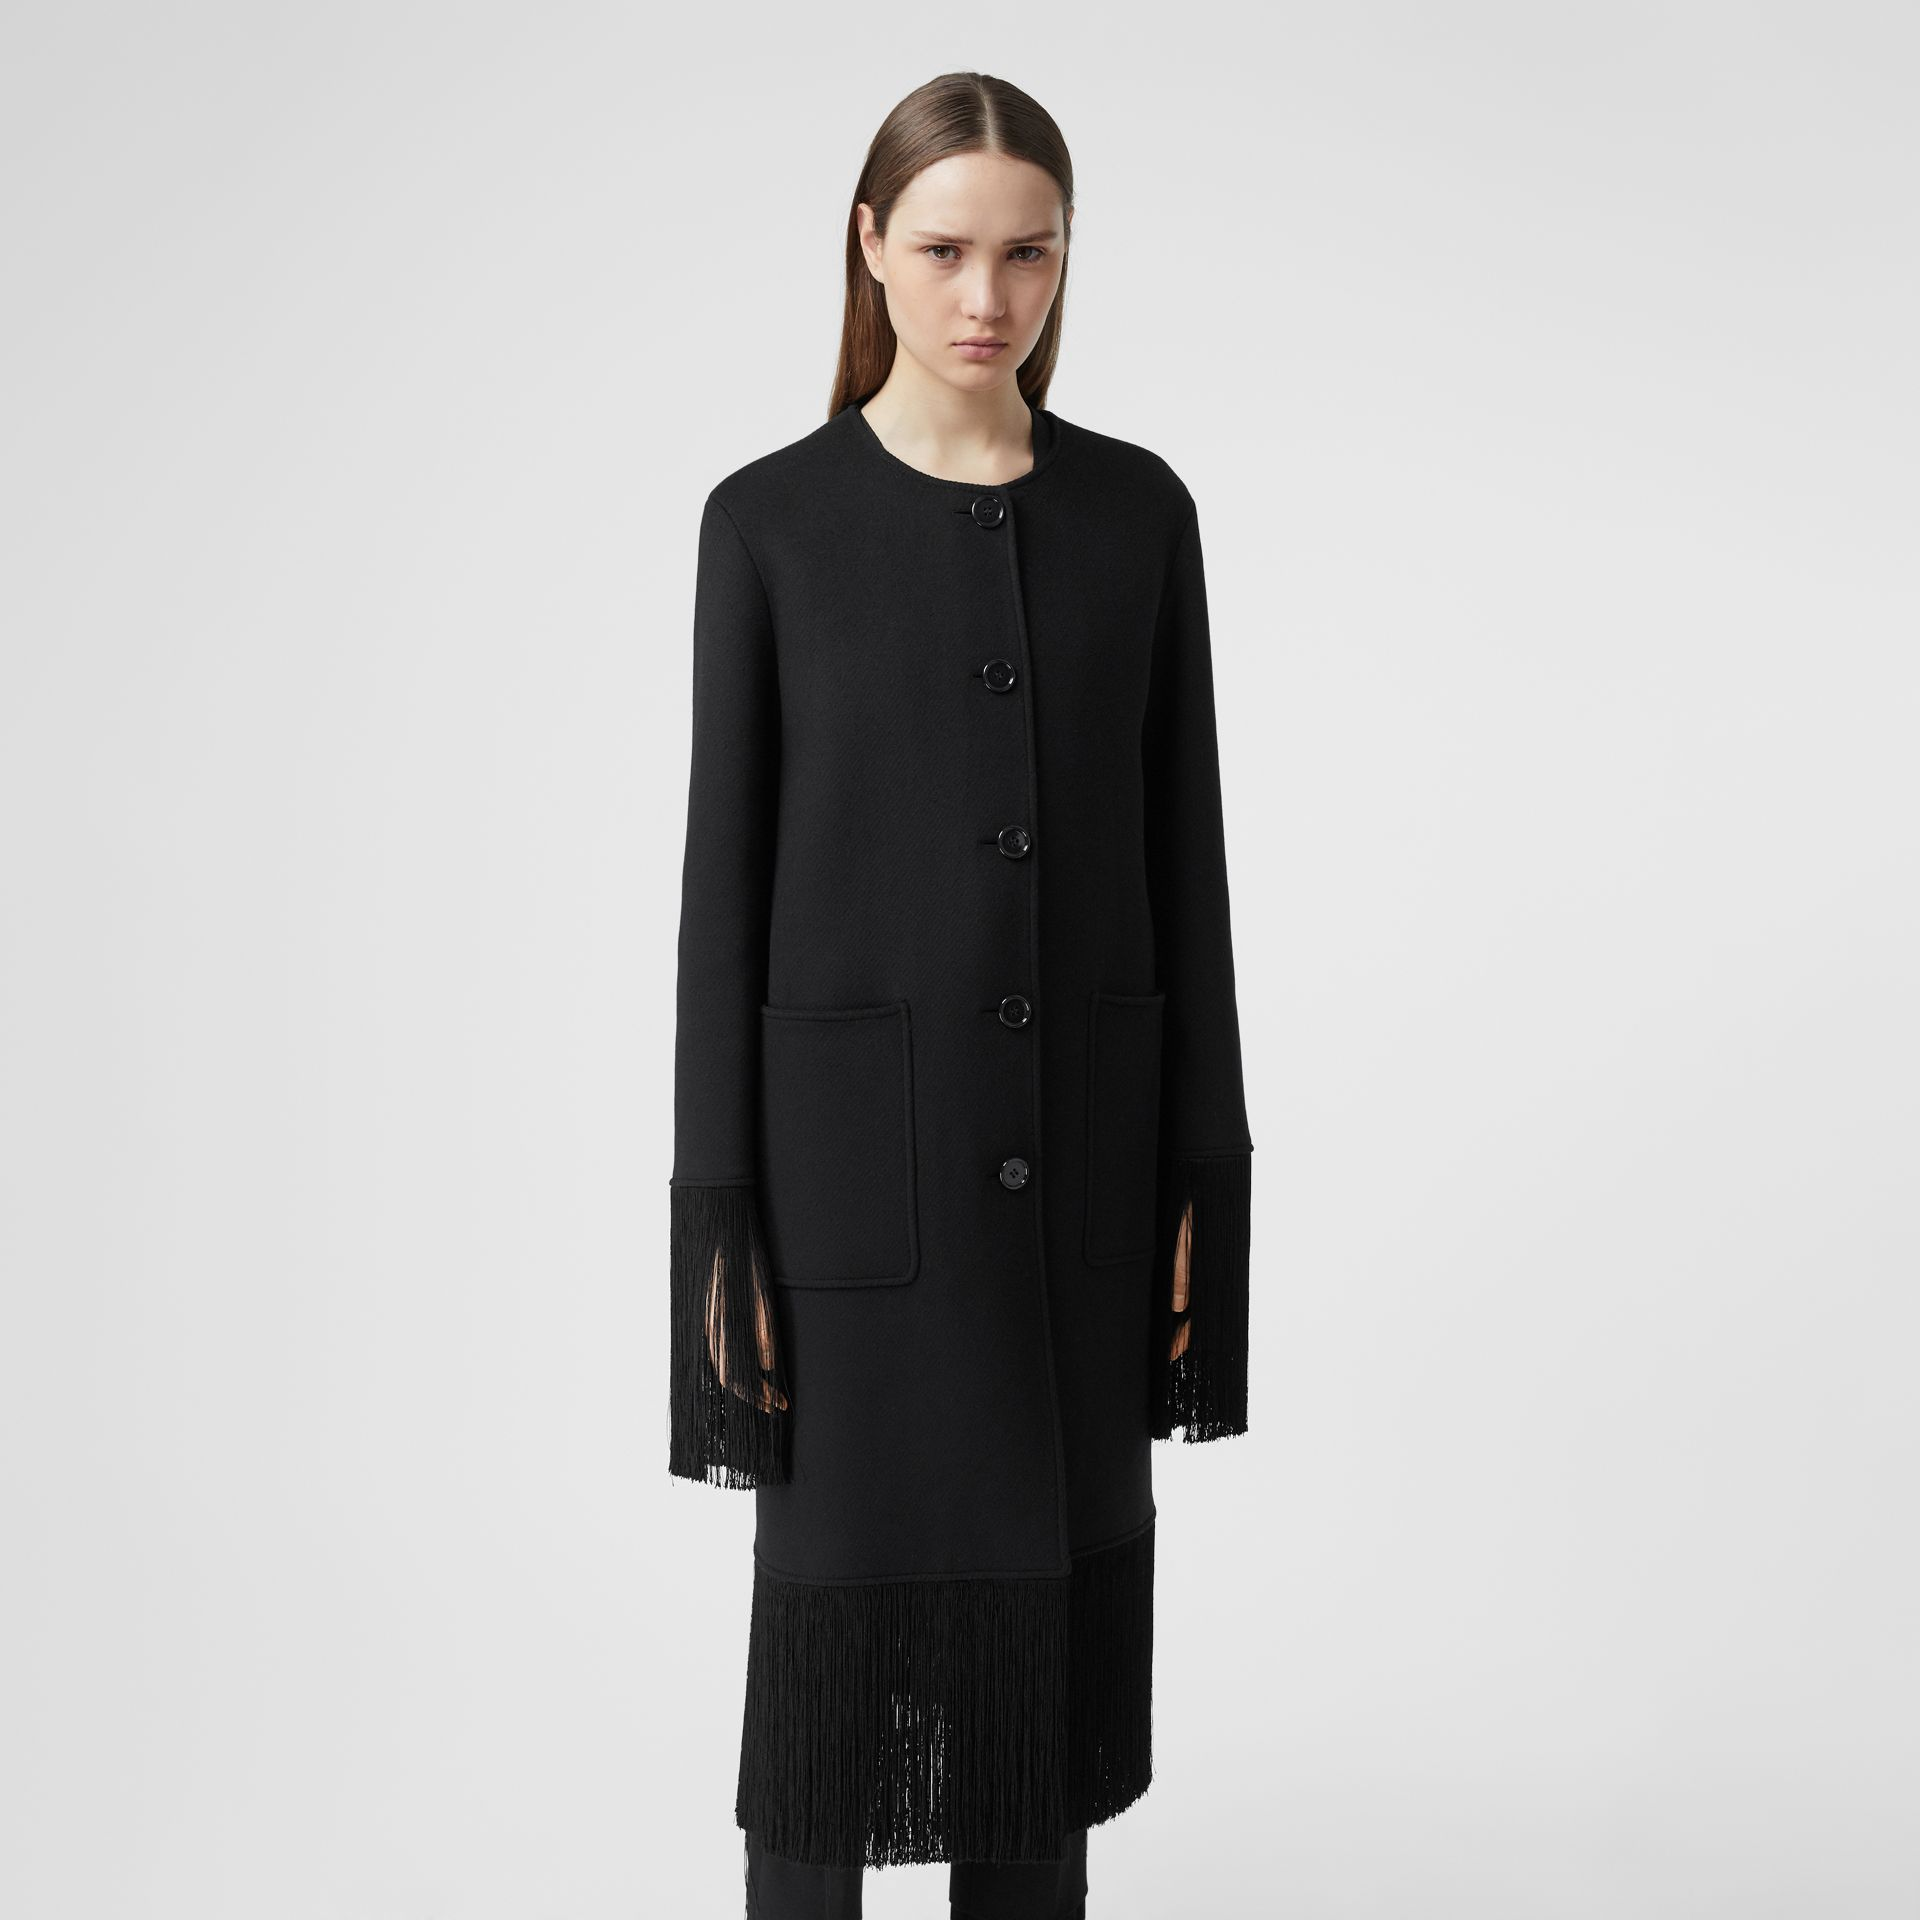 Fringed Double-faced Wool Cashmere Car Coat in Black - Women | Burberry United Kingdom - gallery image 5